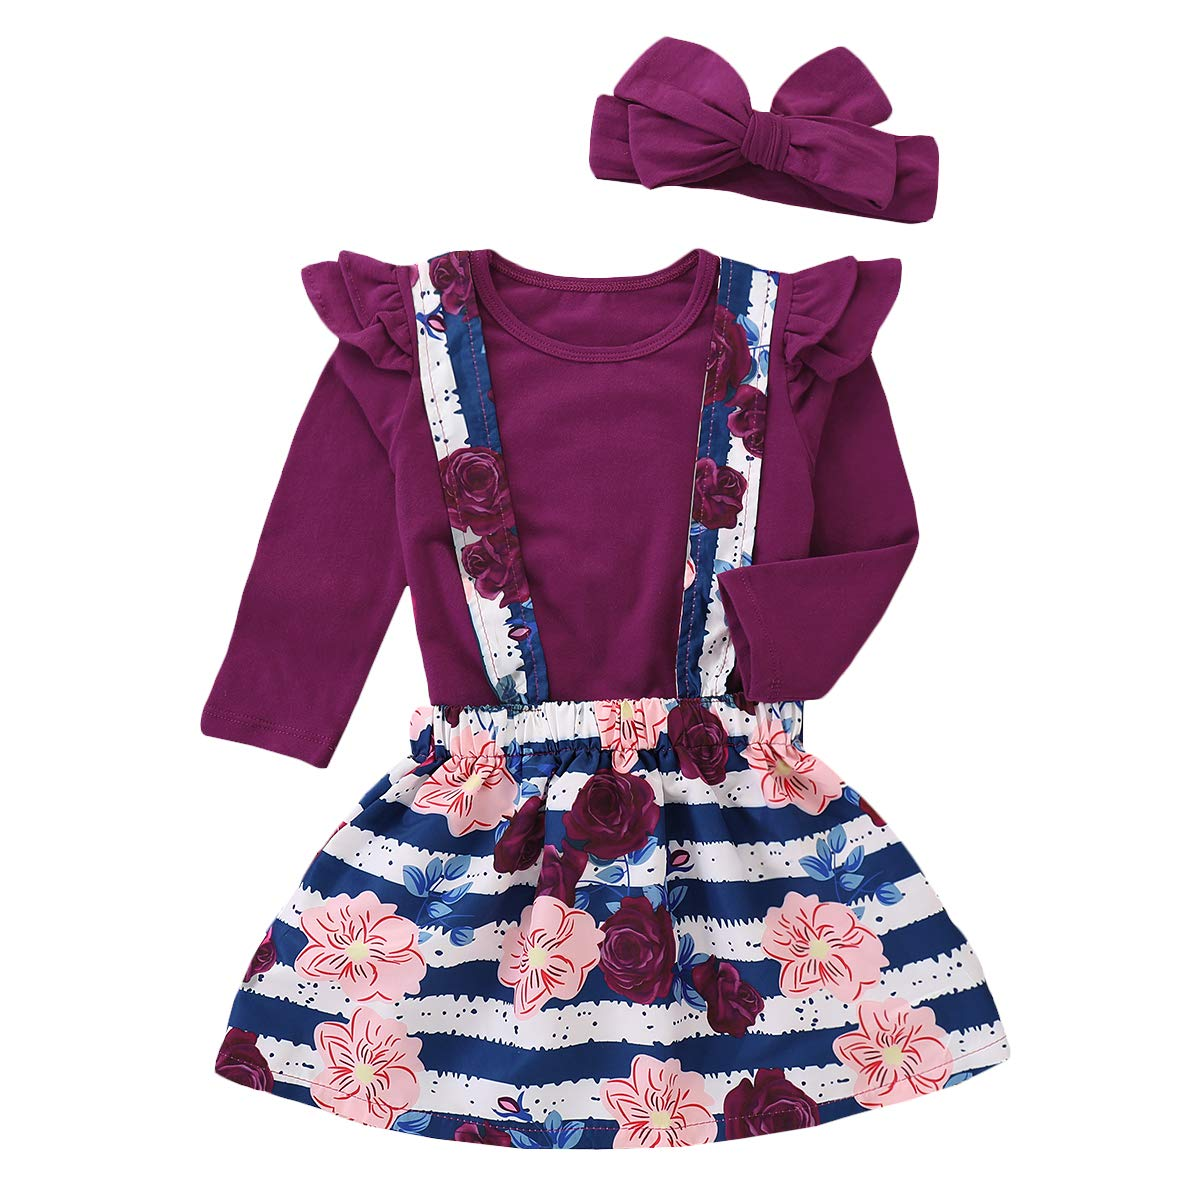 Toddler Baby Girls Ruffle Long Sleeve Tops Floral Suspender Stripe Skirt Outfit Set